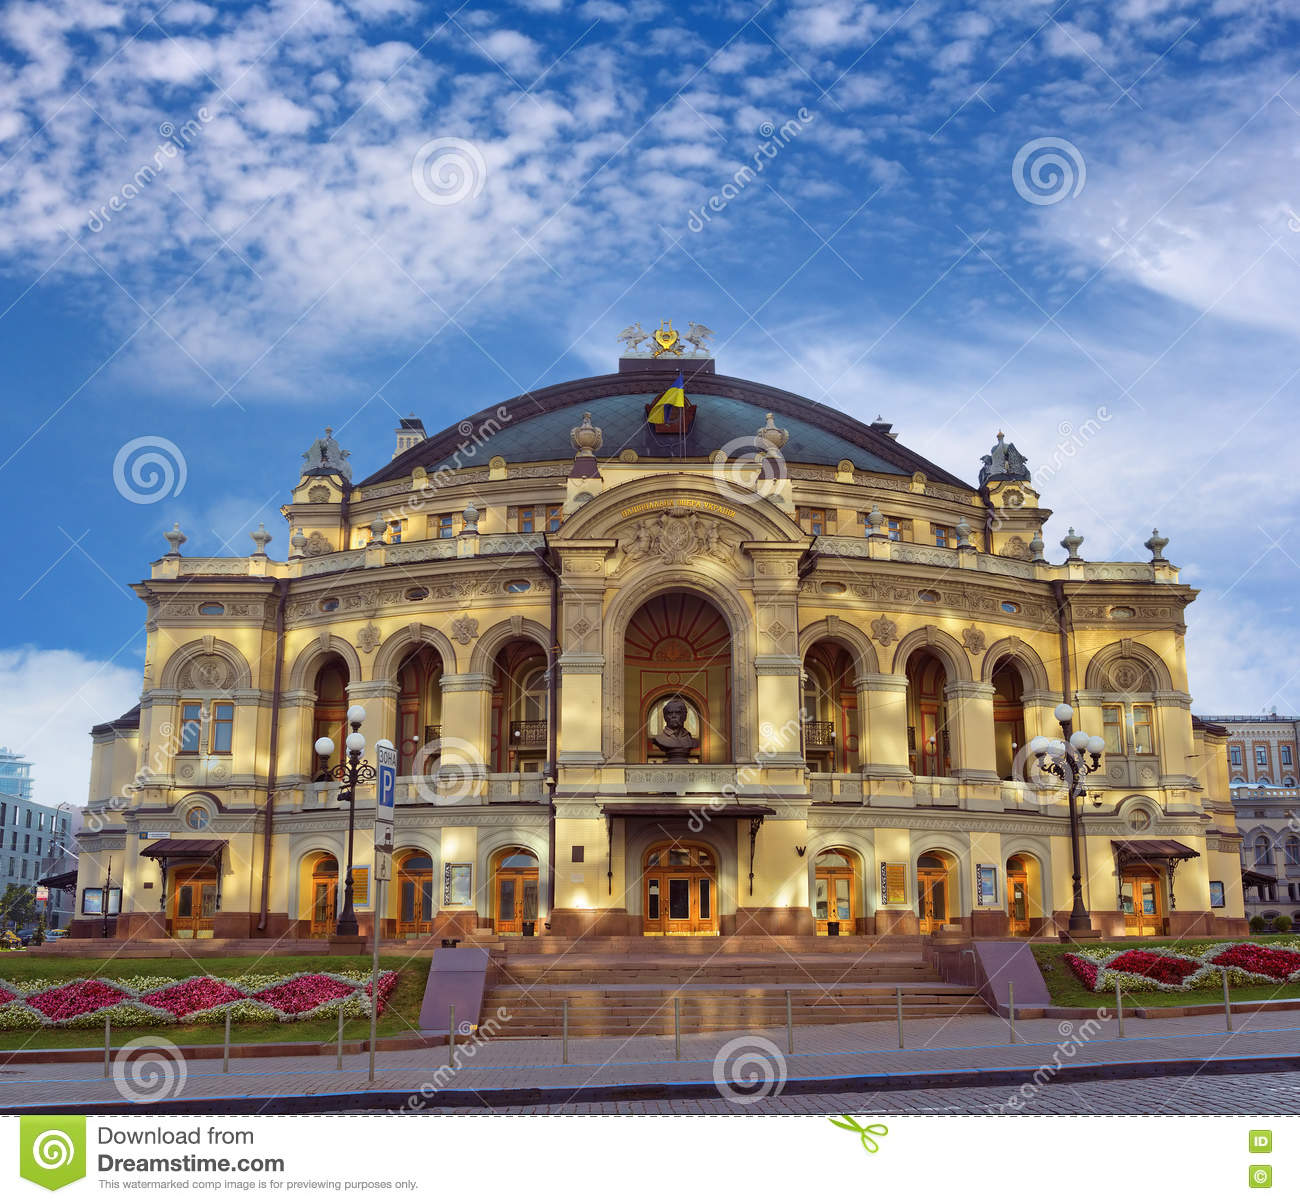 Theaters in Kiev: a selection of sites